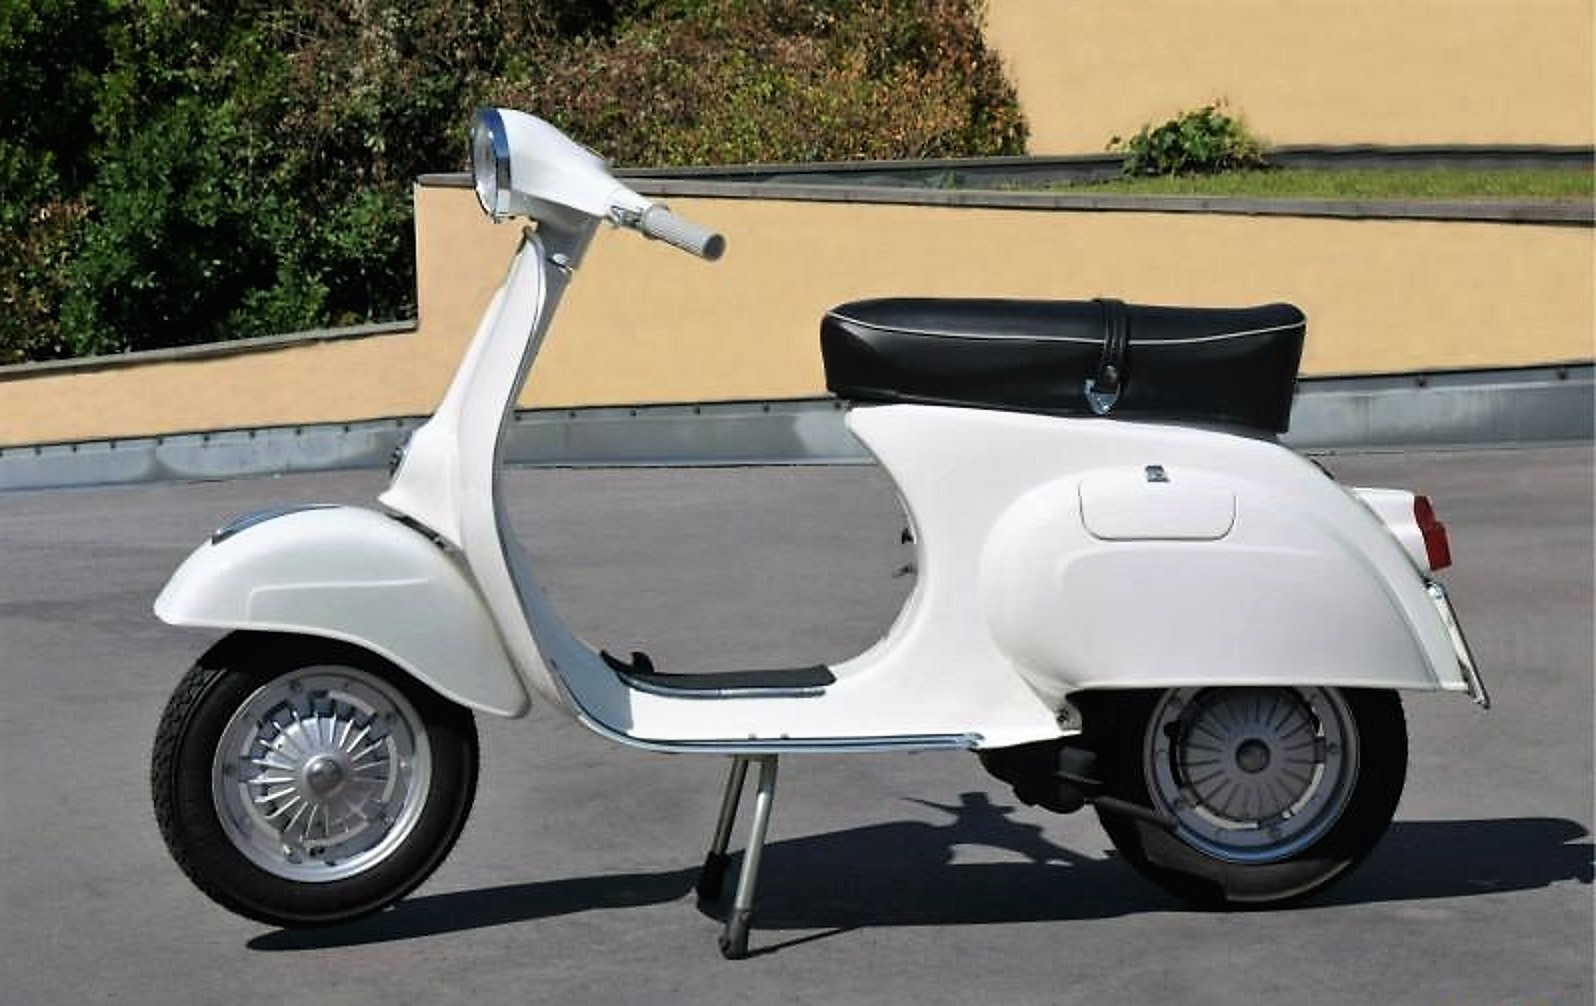 1976 vespa 125 primavera totally restored italian vintage motors. Black Bedroom Furniture Sets. Home Design Ideas